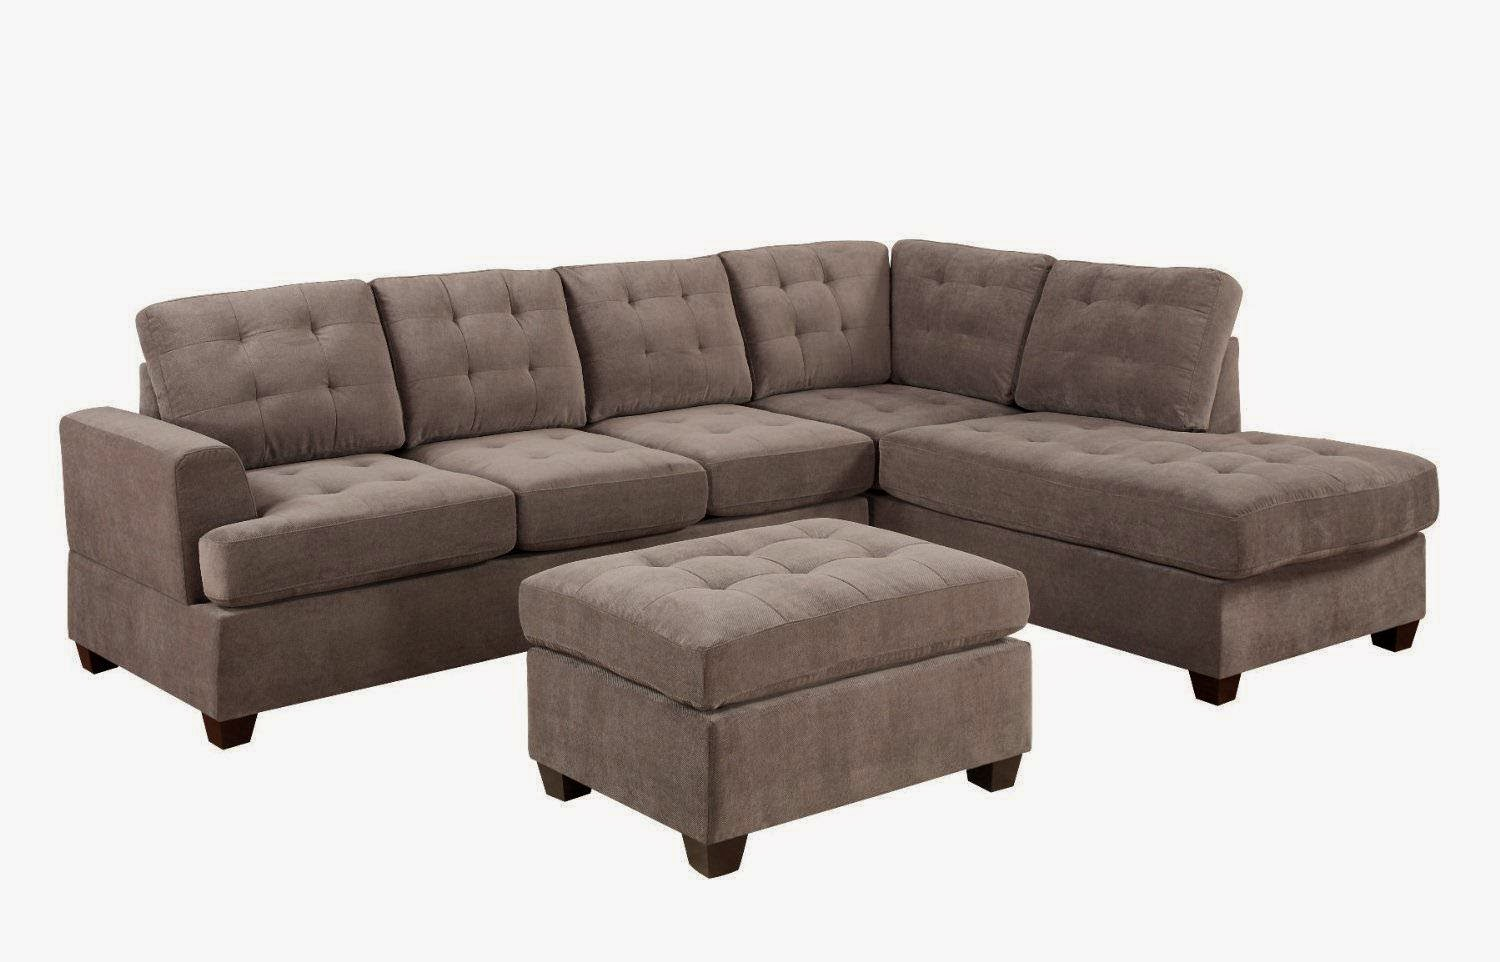 Sale off 47 for bobkona austin 3 piece reversible for Sectional sofas austin